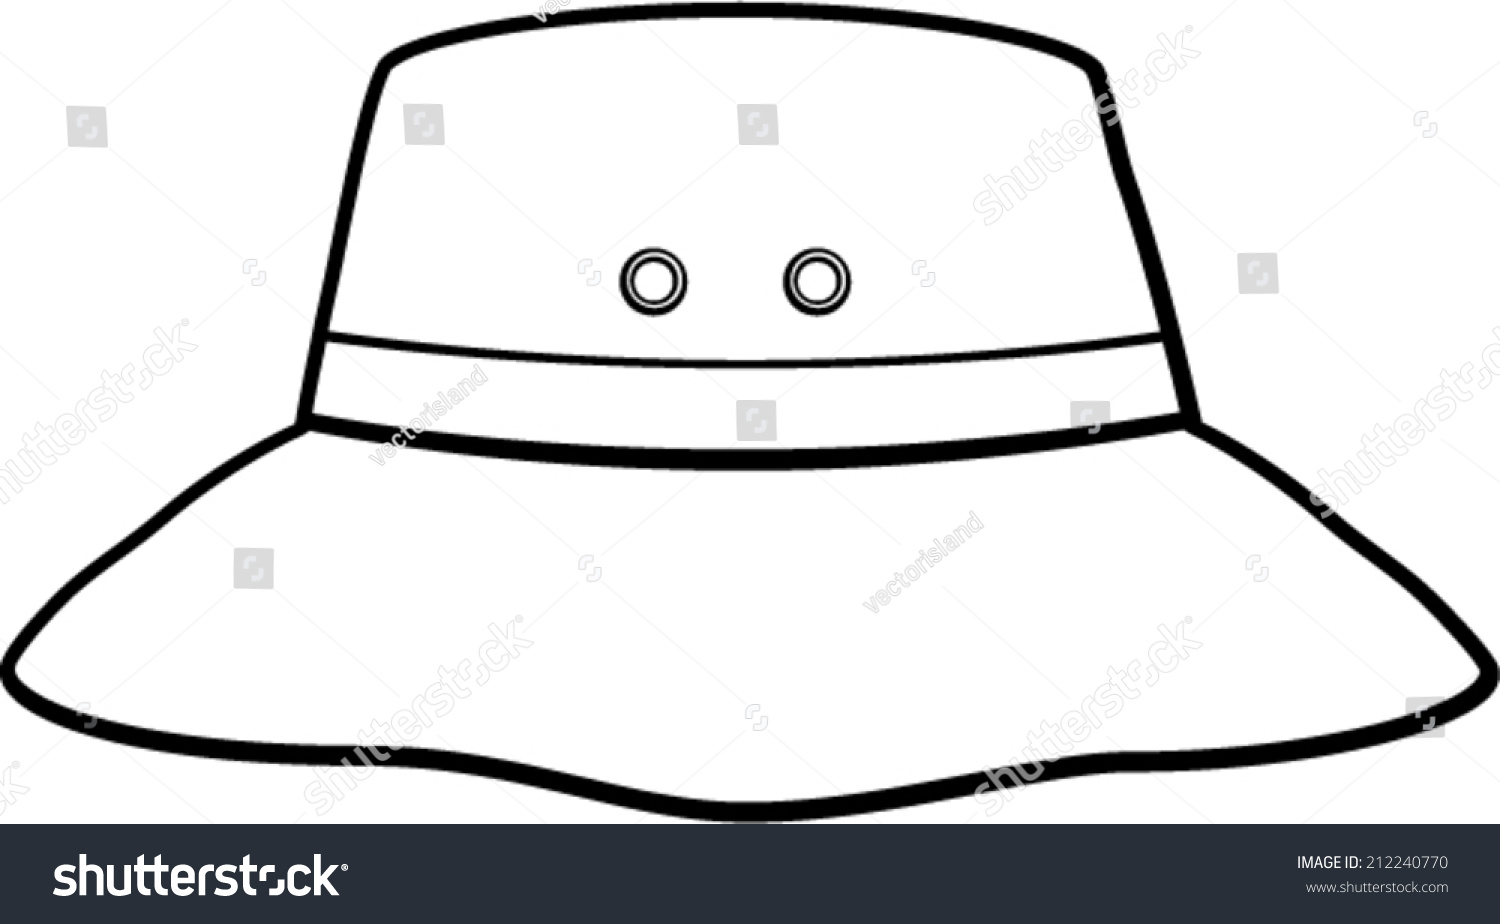 ... promo code bucket hat stock vector royalty free 212240770 shutterstock  b14b1 64586 e27b806f27ca